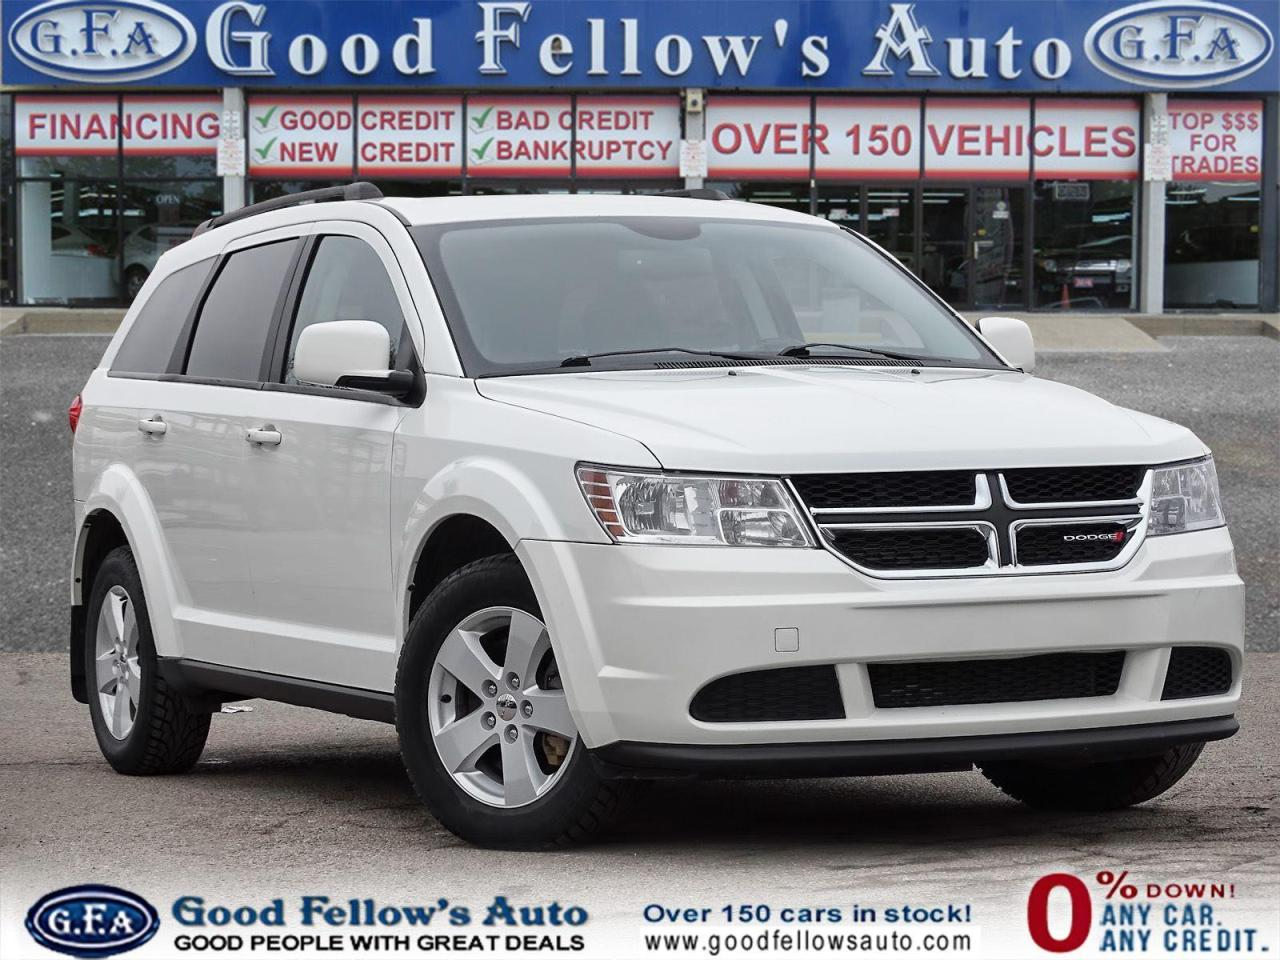 used 2017 Dodge Journey car, priced at $13,400